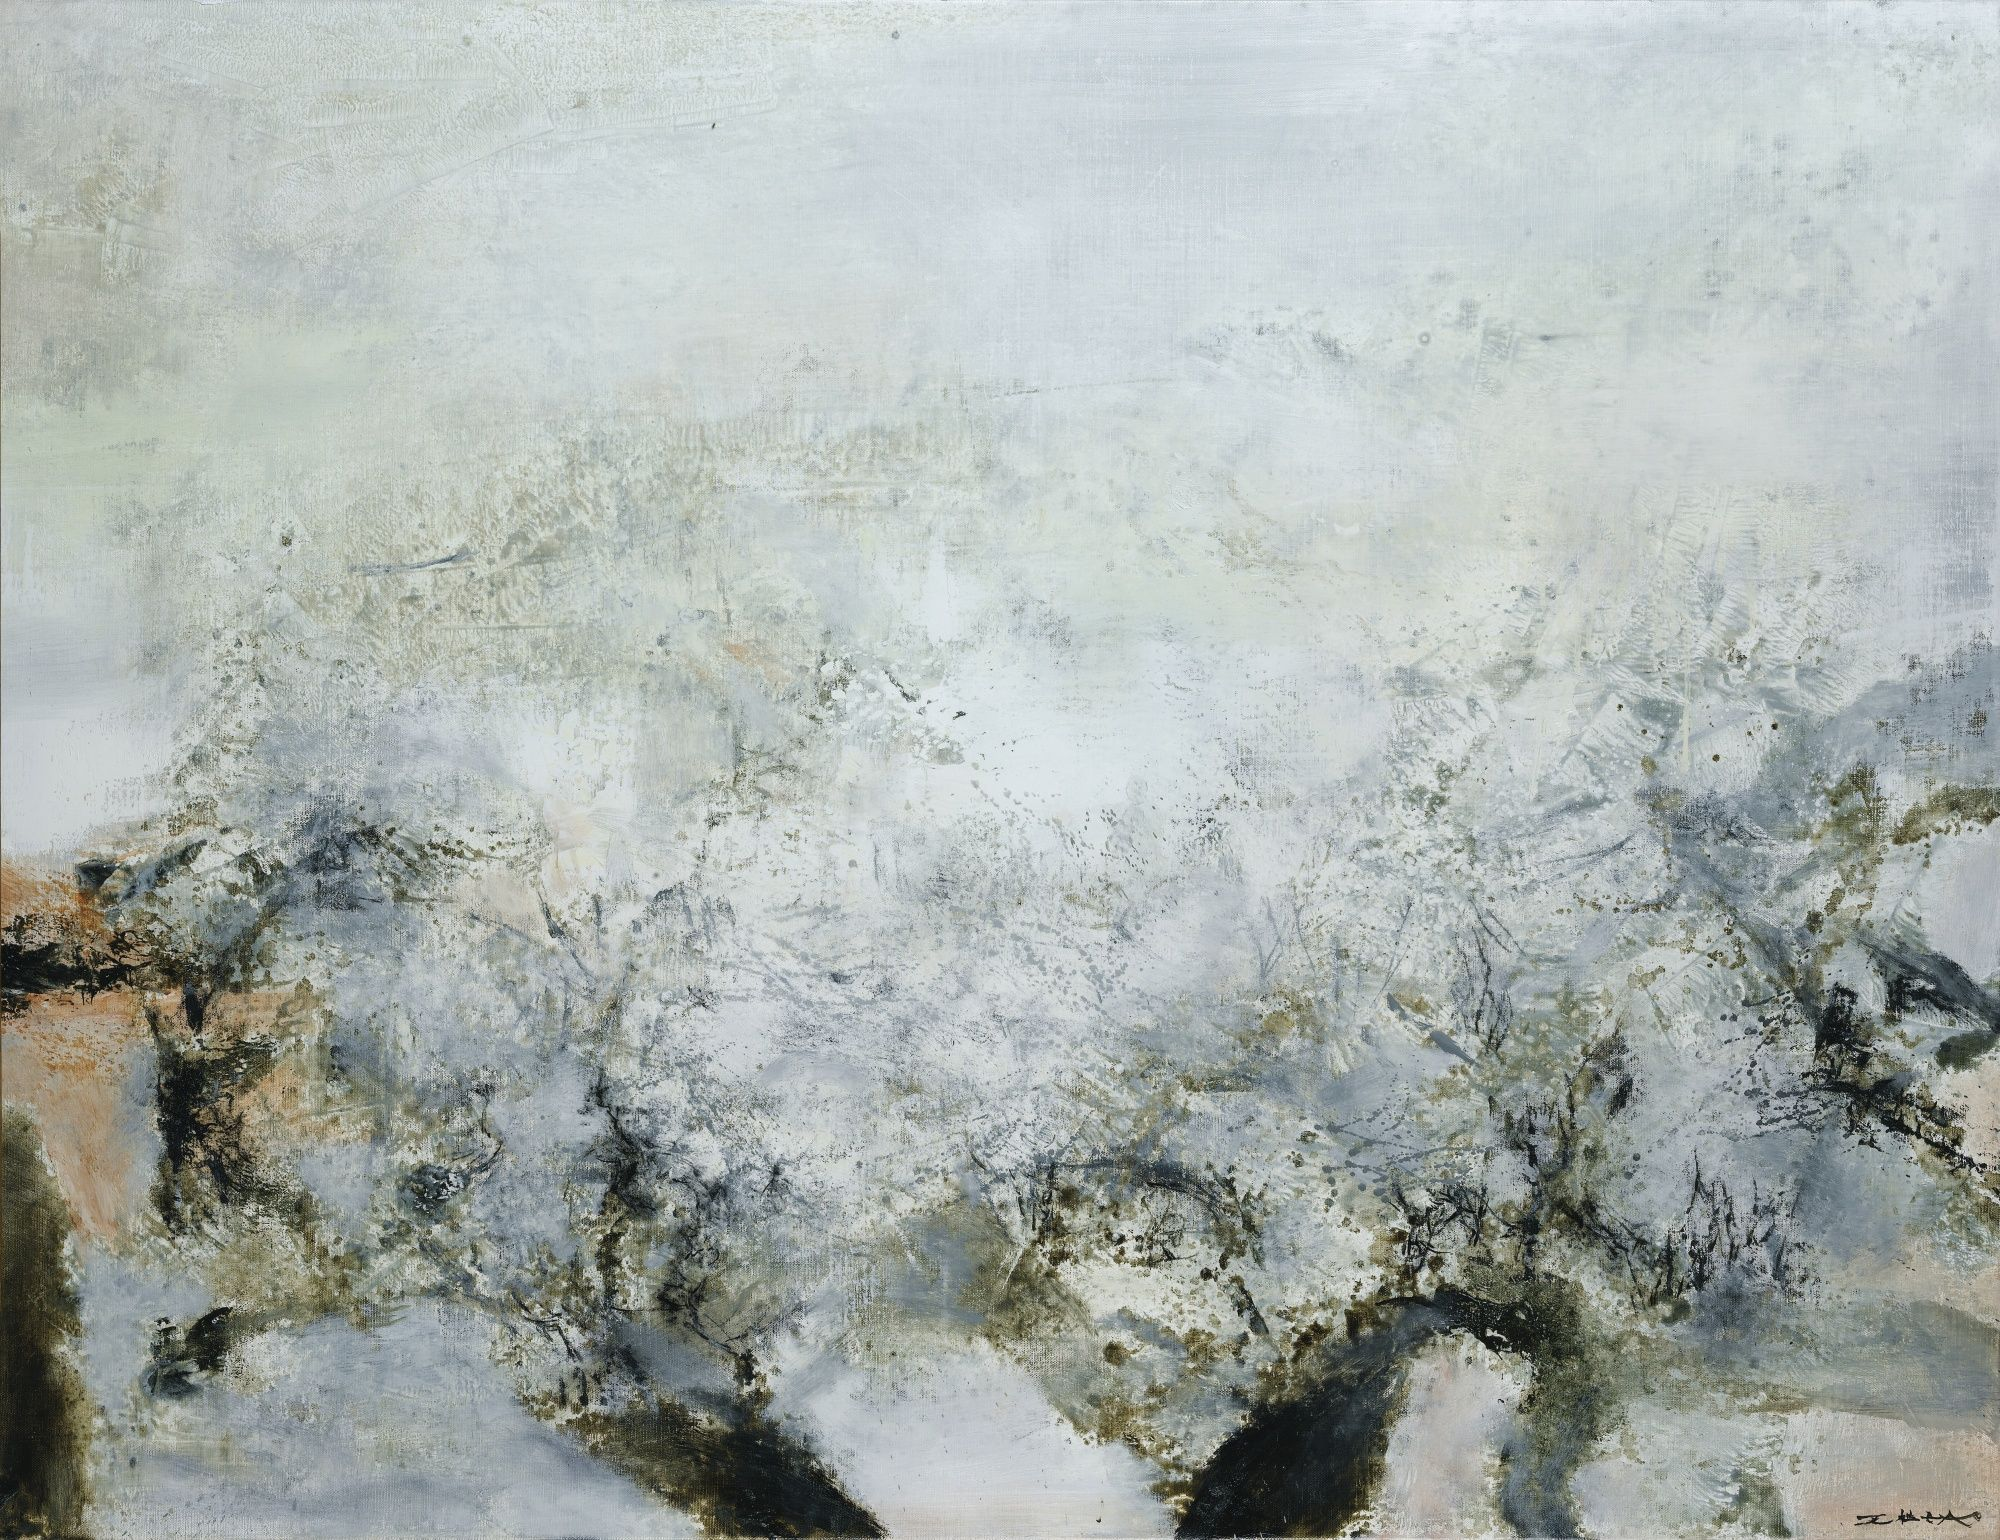 ZAO WOU-KI 1920 - 2013 1.11.86 SIGNED; SIGNED AND DATED ON THE BACK; OIL ON CANVAS. EXECUTED ON NOVEMBER 1ST, 1986.ZAO WOU-KI 1920 - 2013 1.11.86 SIGNED; SIGNED AND DATED ON THE BACK; OIL ON CANVAS. EXECUTED ON NOVEMBER 1ST, 1986.